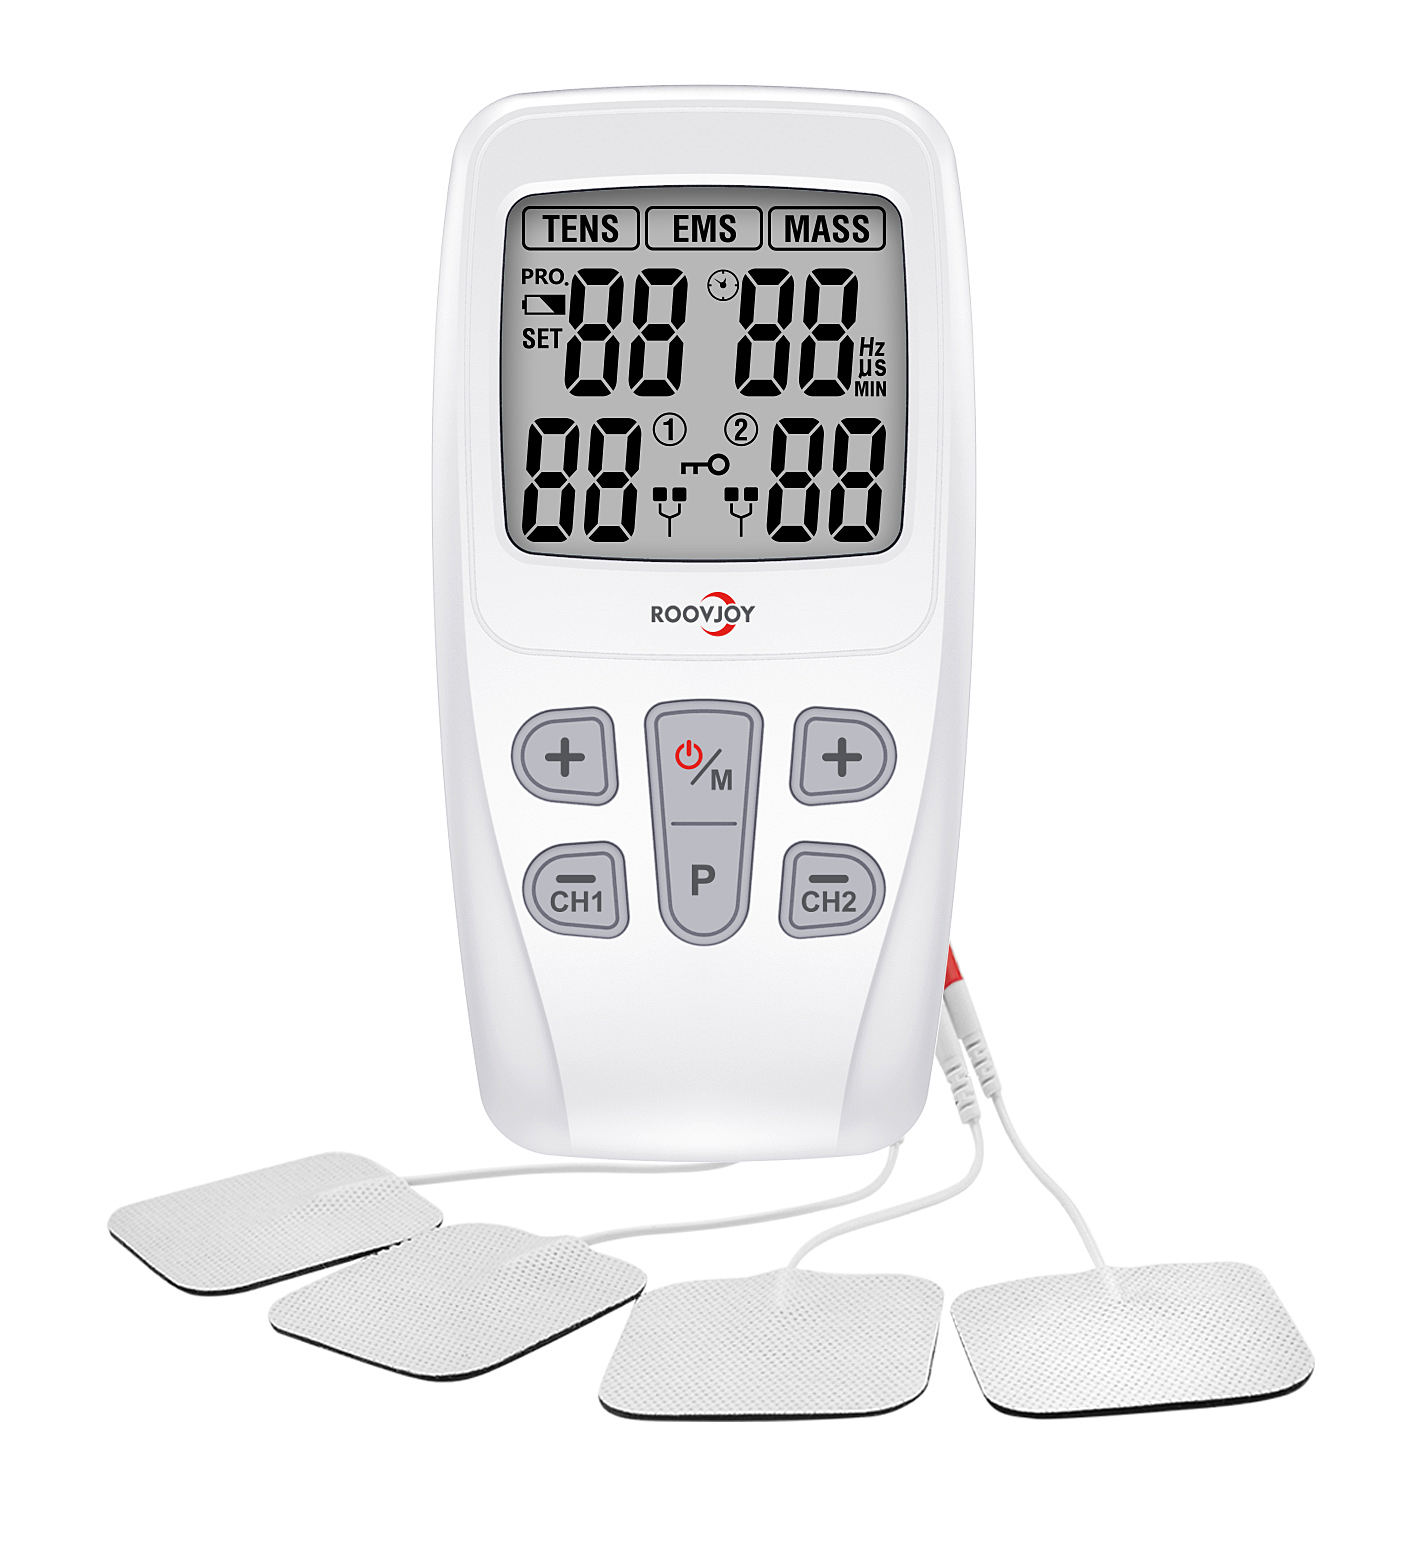 ROOVJOY Tens Unit+ EMS Muscle Stimulator+ Pulse Massager 3 IN 1 Tens machine